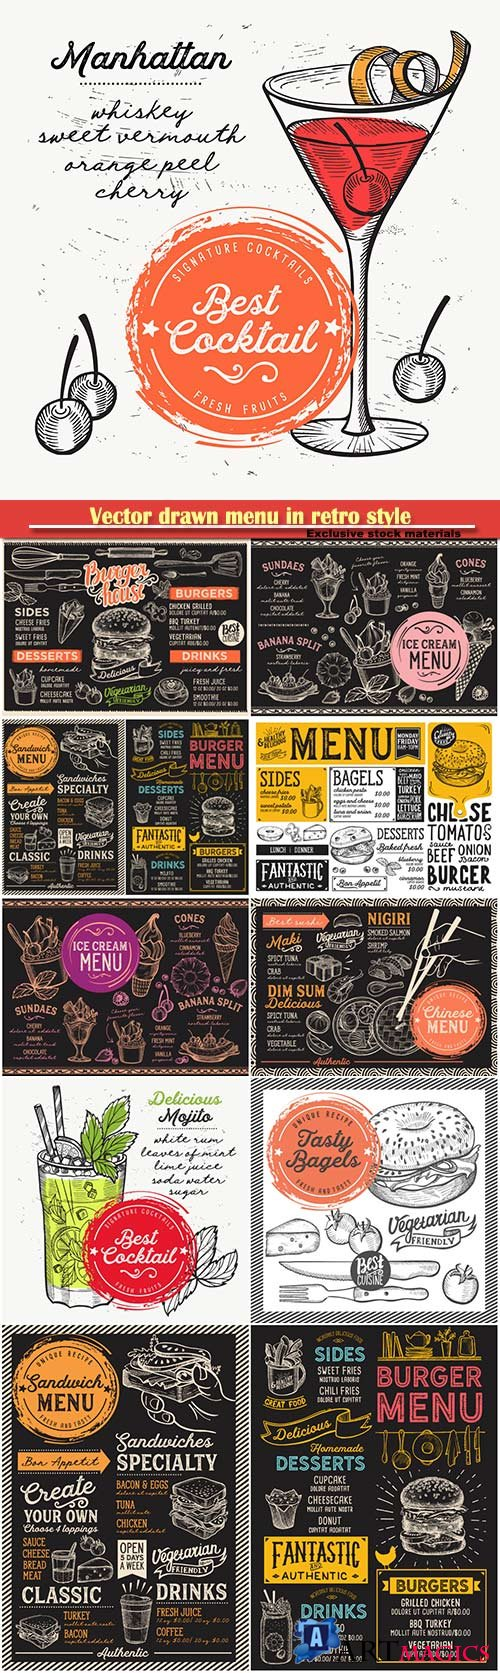 Vector drawn menu in retro style, fast food, sushi, ice cream, cocktails